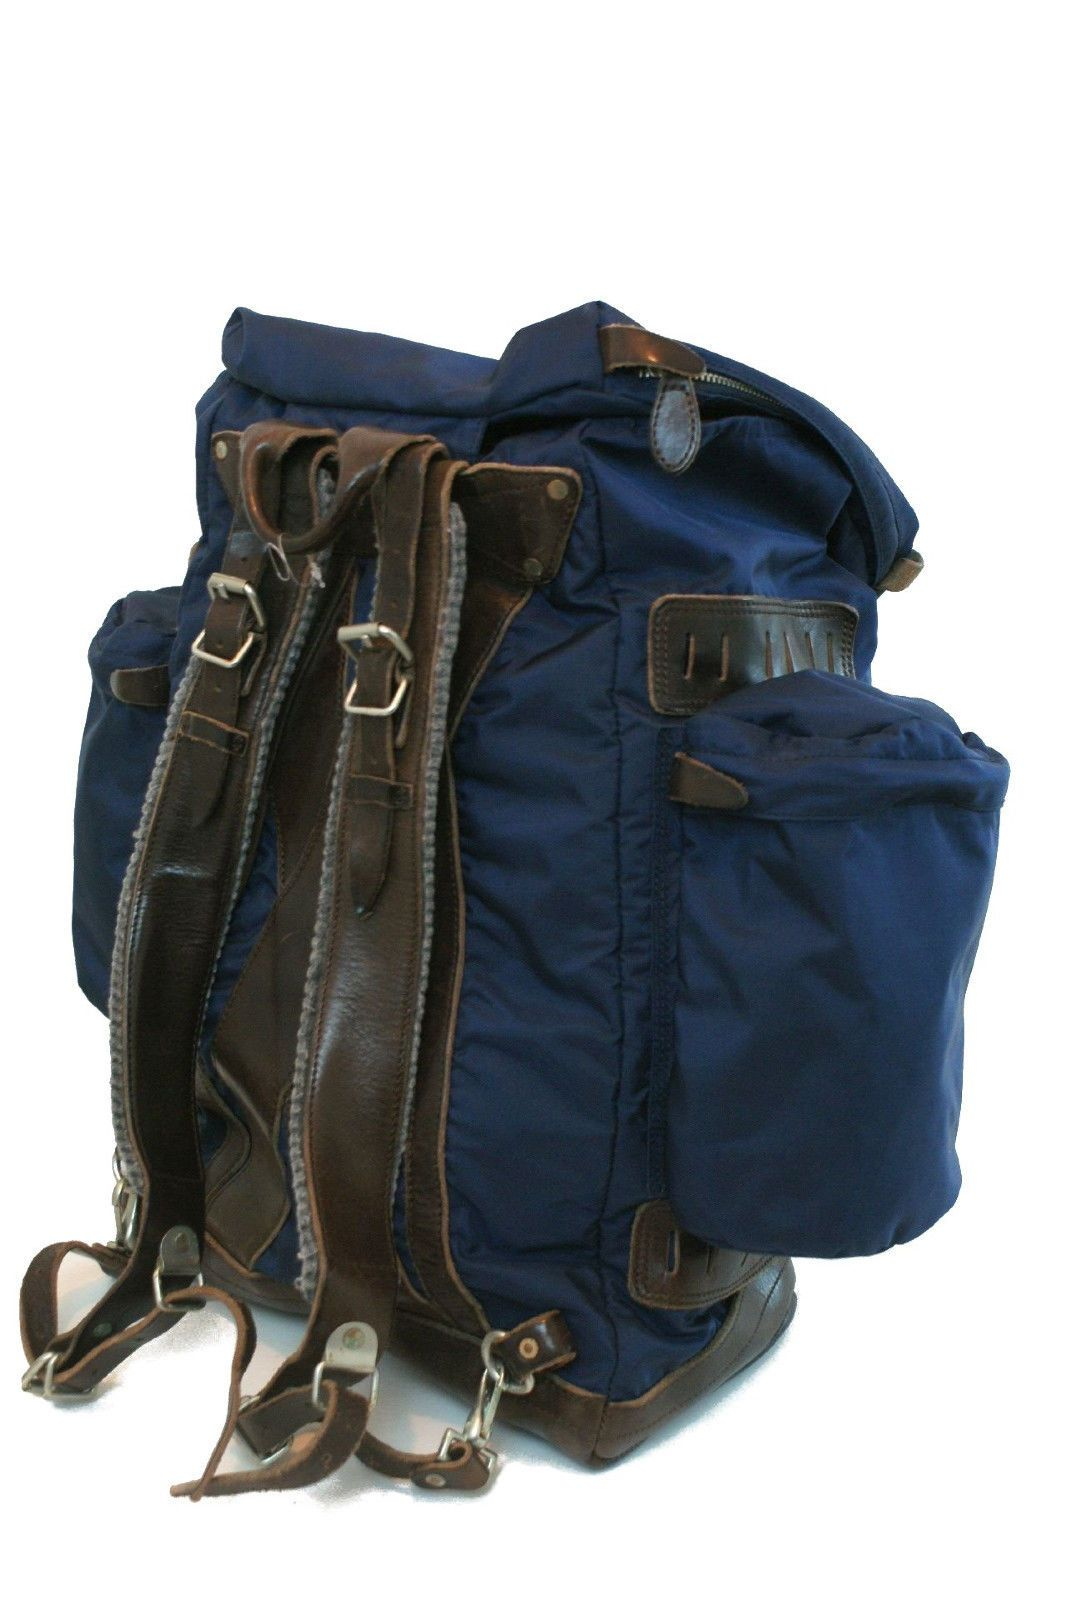 9e54240453 RALPH LAUREN POLO YOSEMITE BACKPACK NYLON-LEATHER NAVY BLUE ...